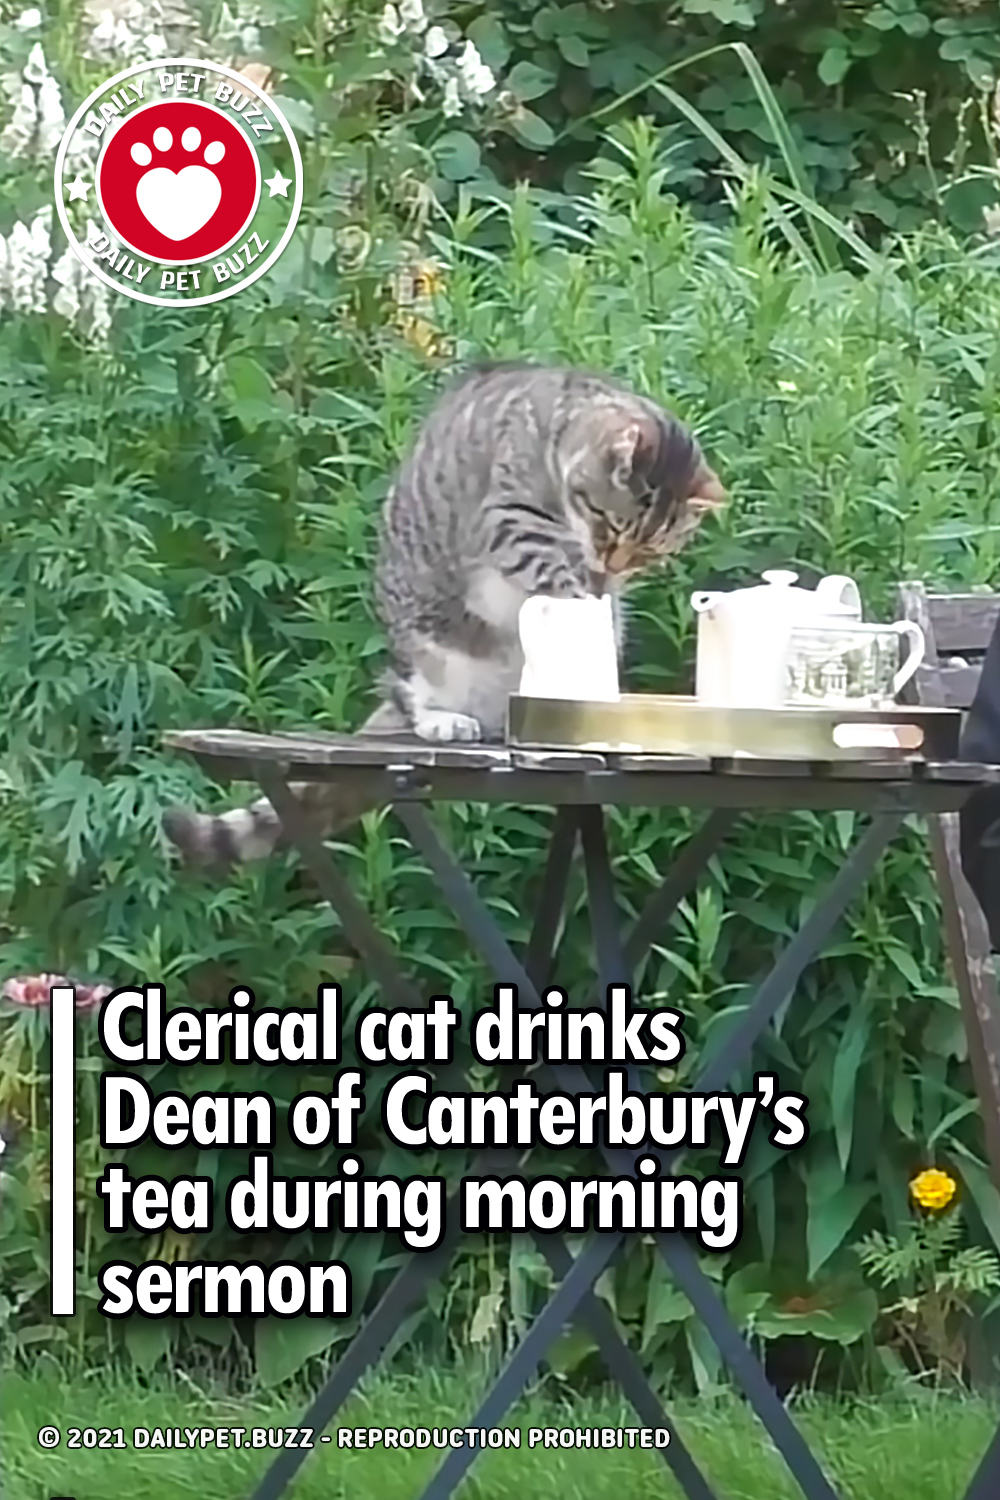 Clerical cat drinks Dean of Canterbury's tea during morning sermon